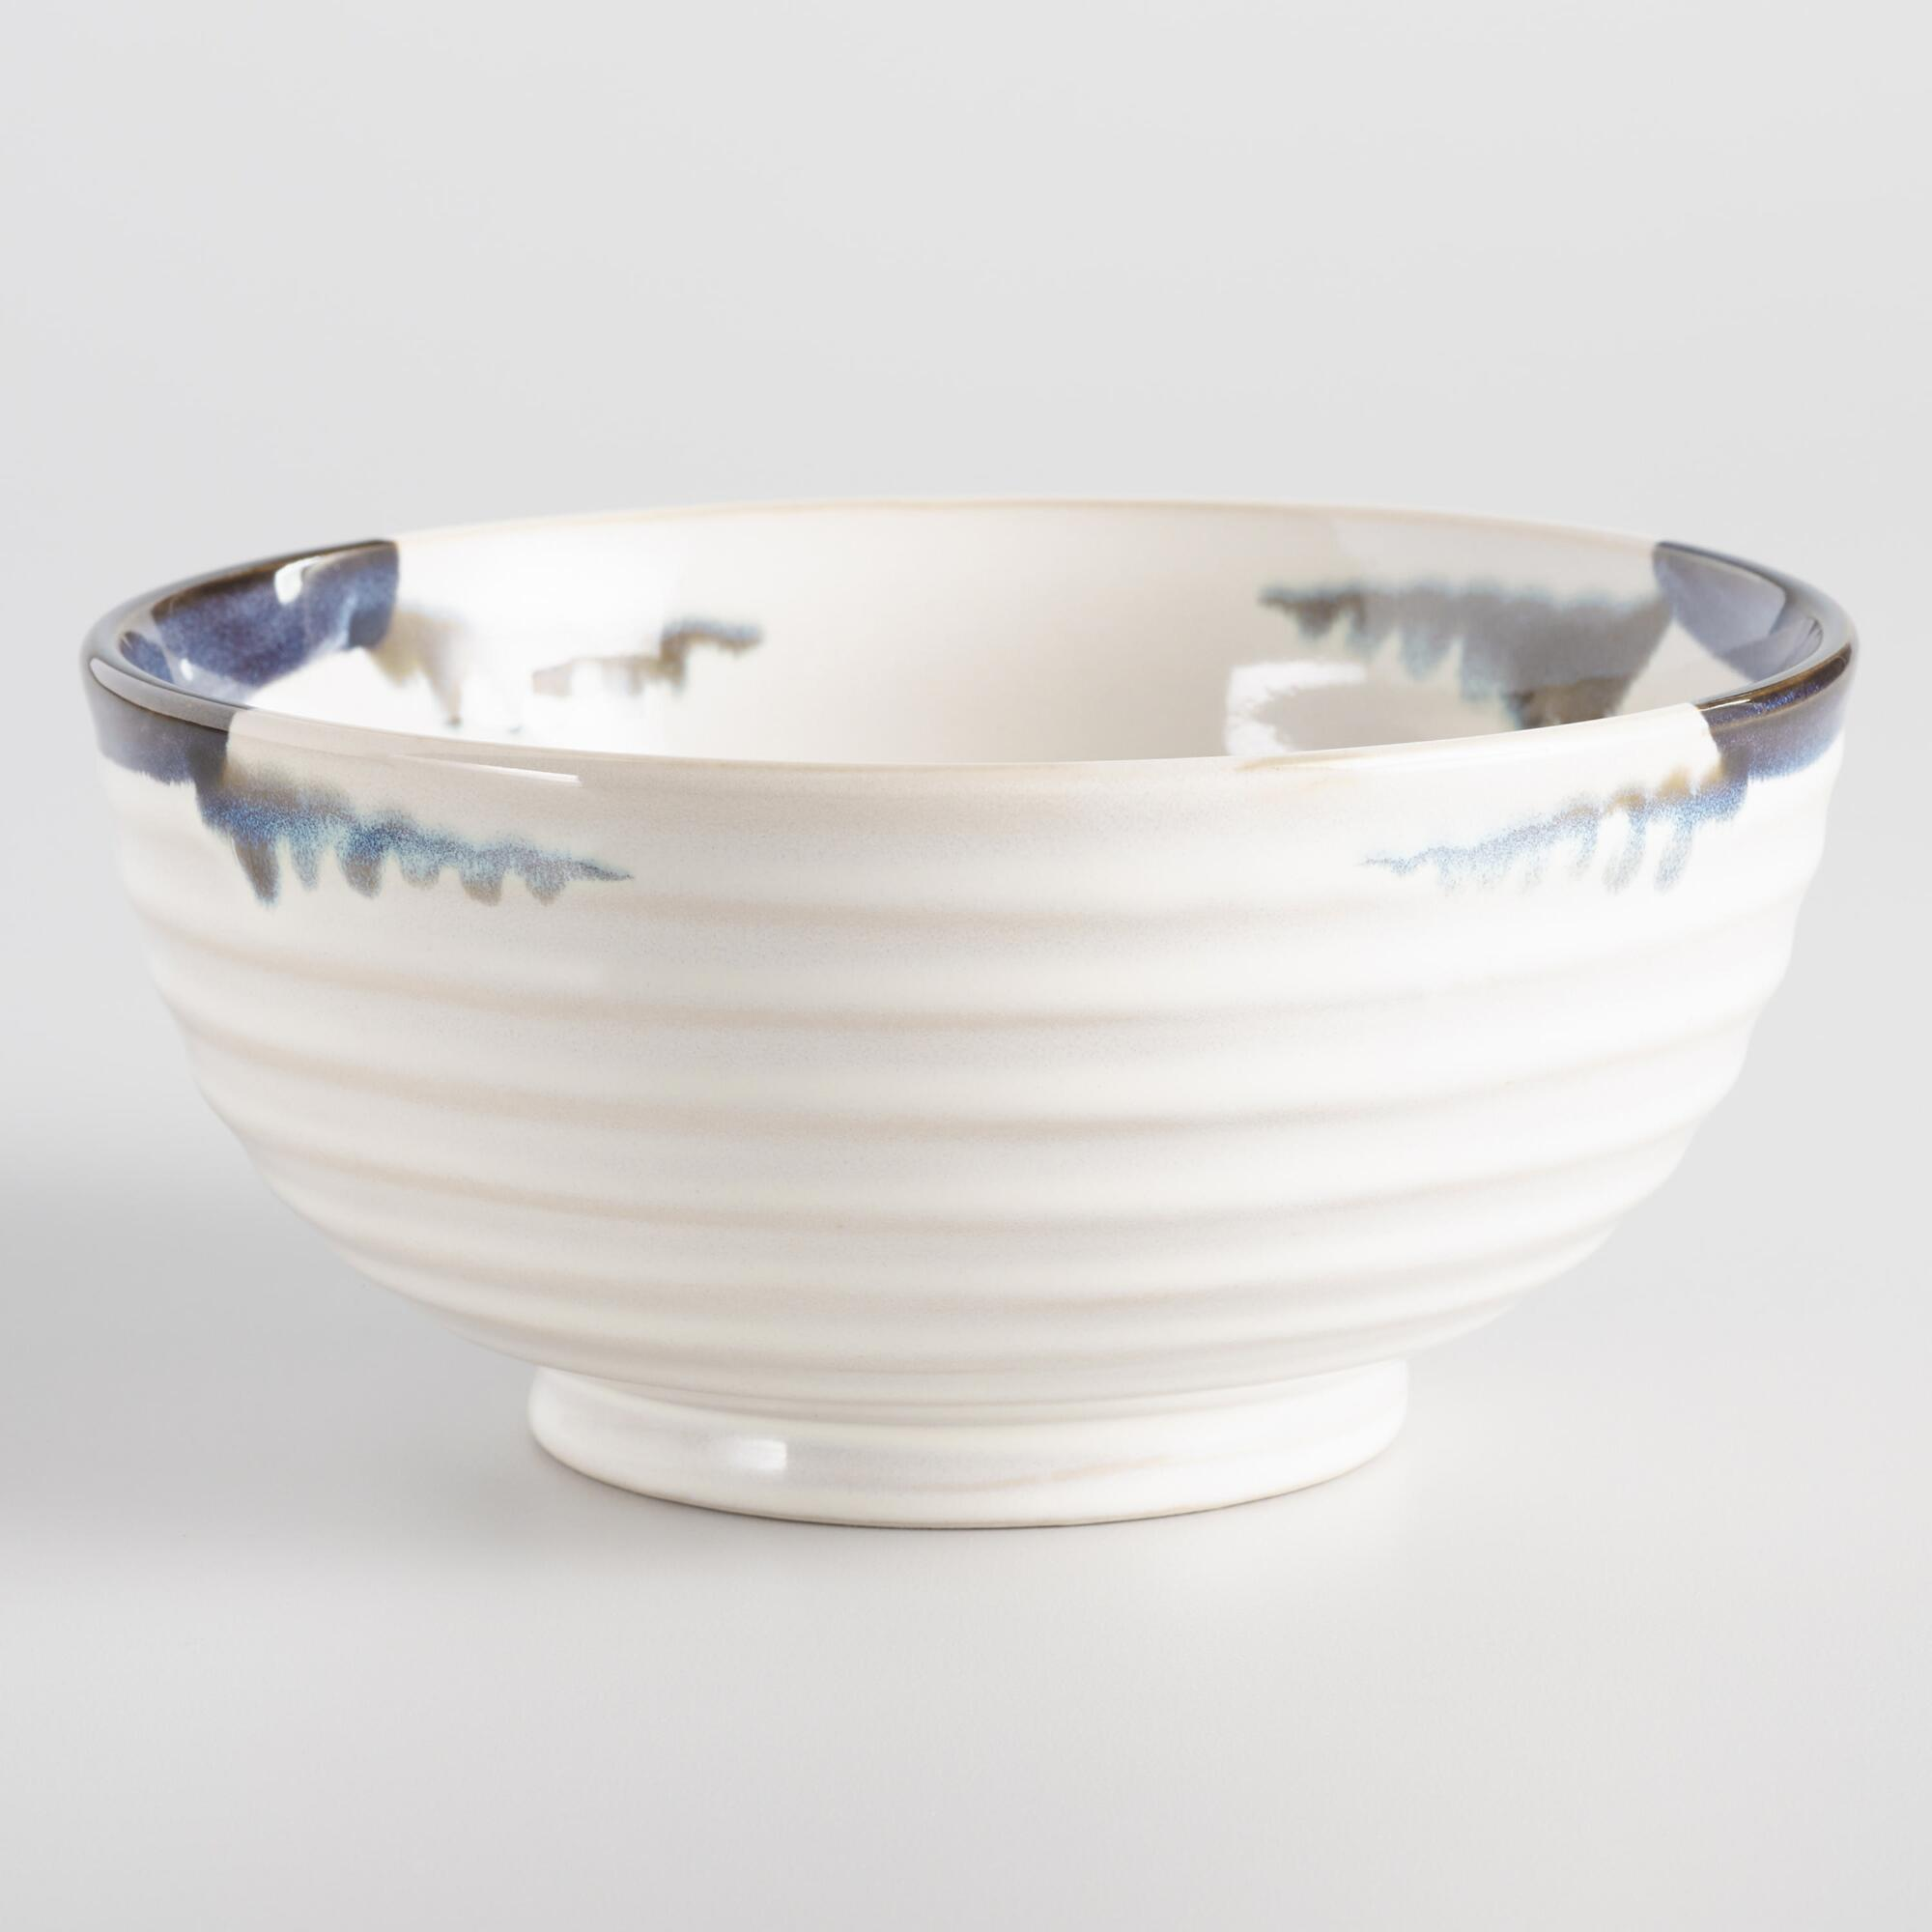 Blue and White Reactive Glaze Medium Bowls Set of 4 by World Market